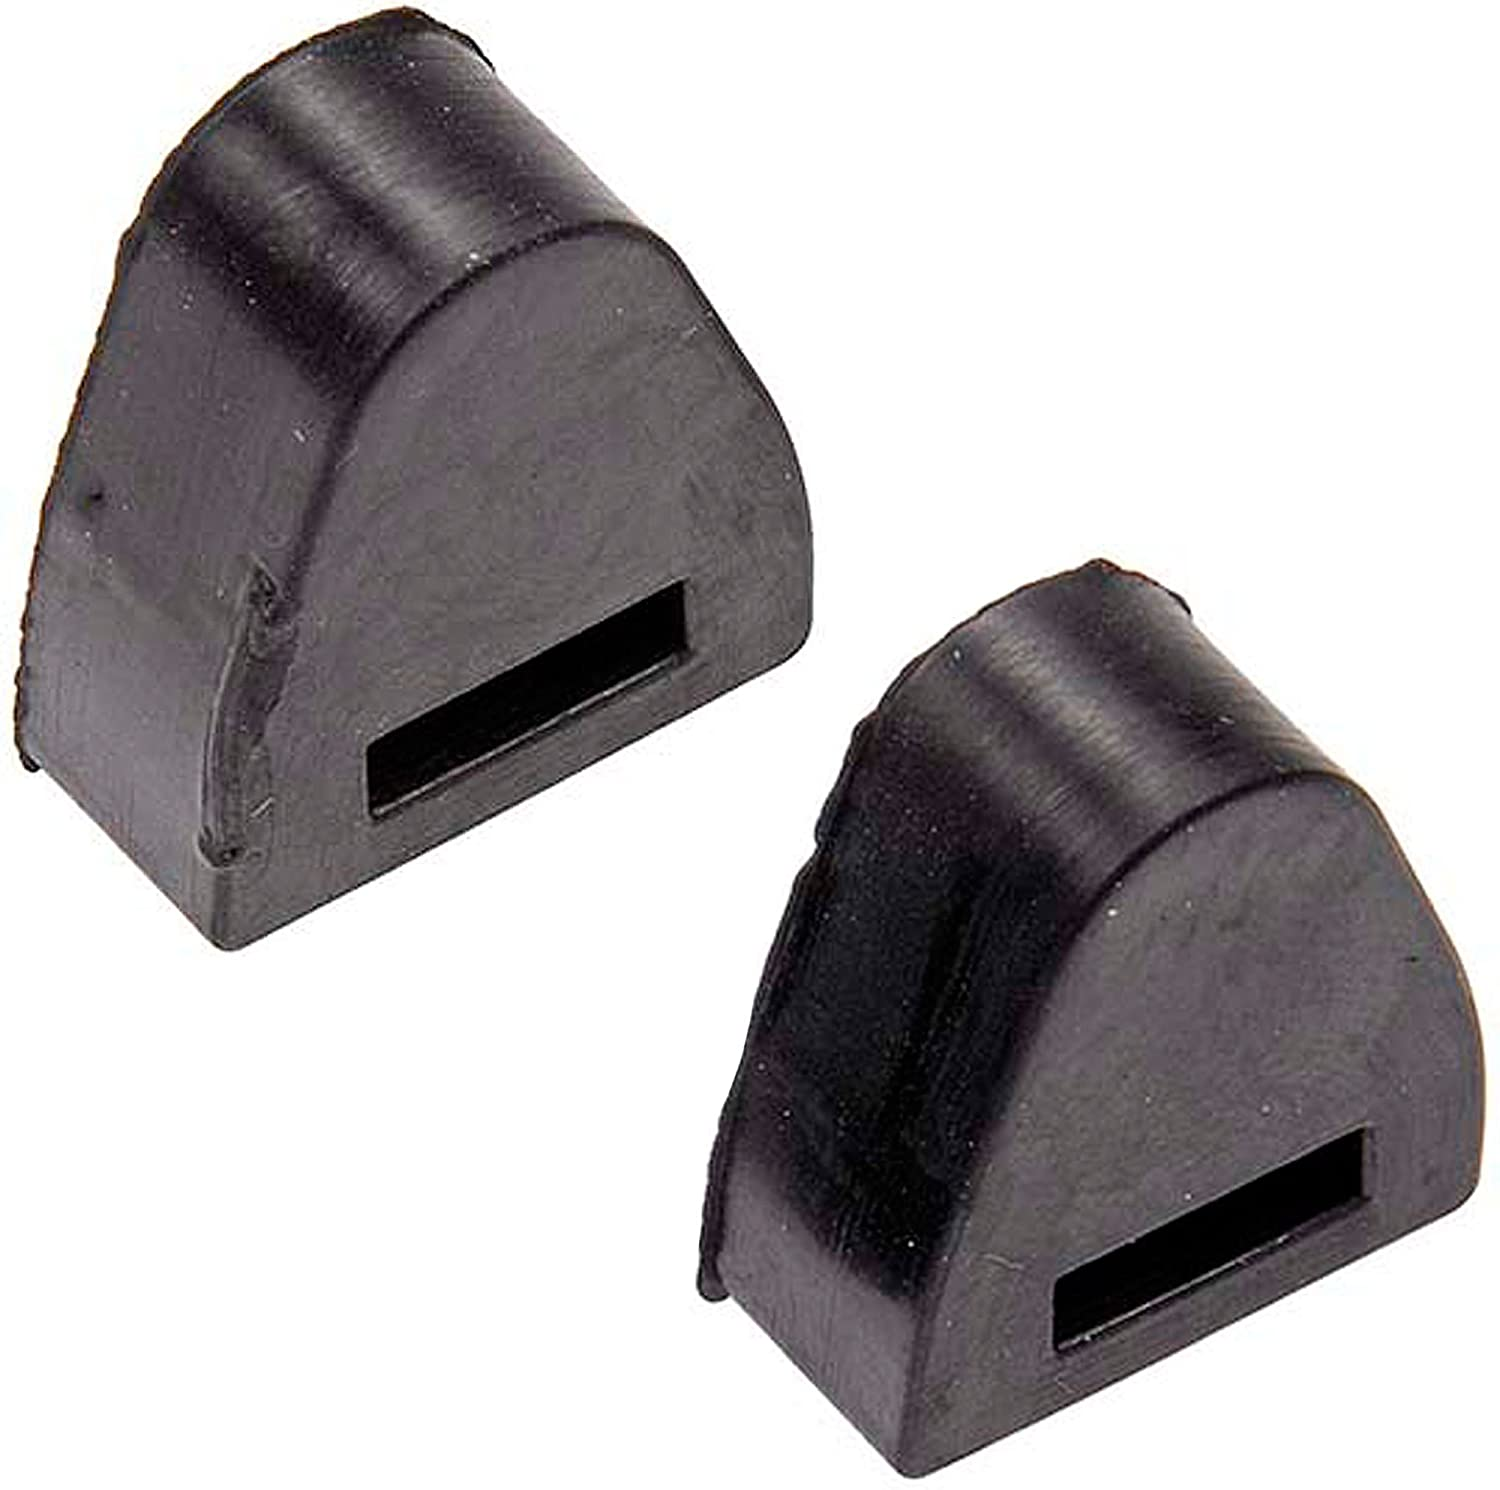 APDTY 56780 Tailgate Rubber Bumper Stop Set For 1999-2007 Chevy Silverado Pickup / GMC Sierra Pickup (Includes 2 Tailgate Bumpers) (Replaces GM 16633065)